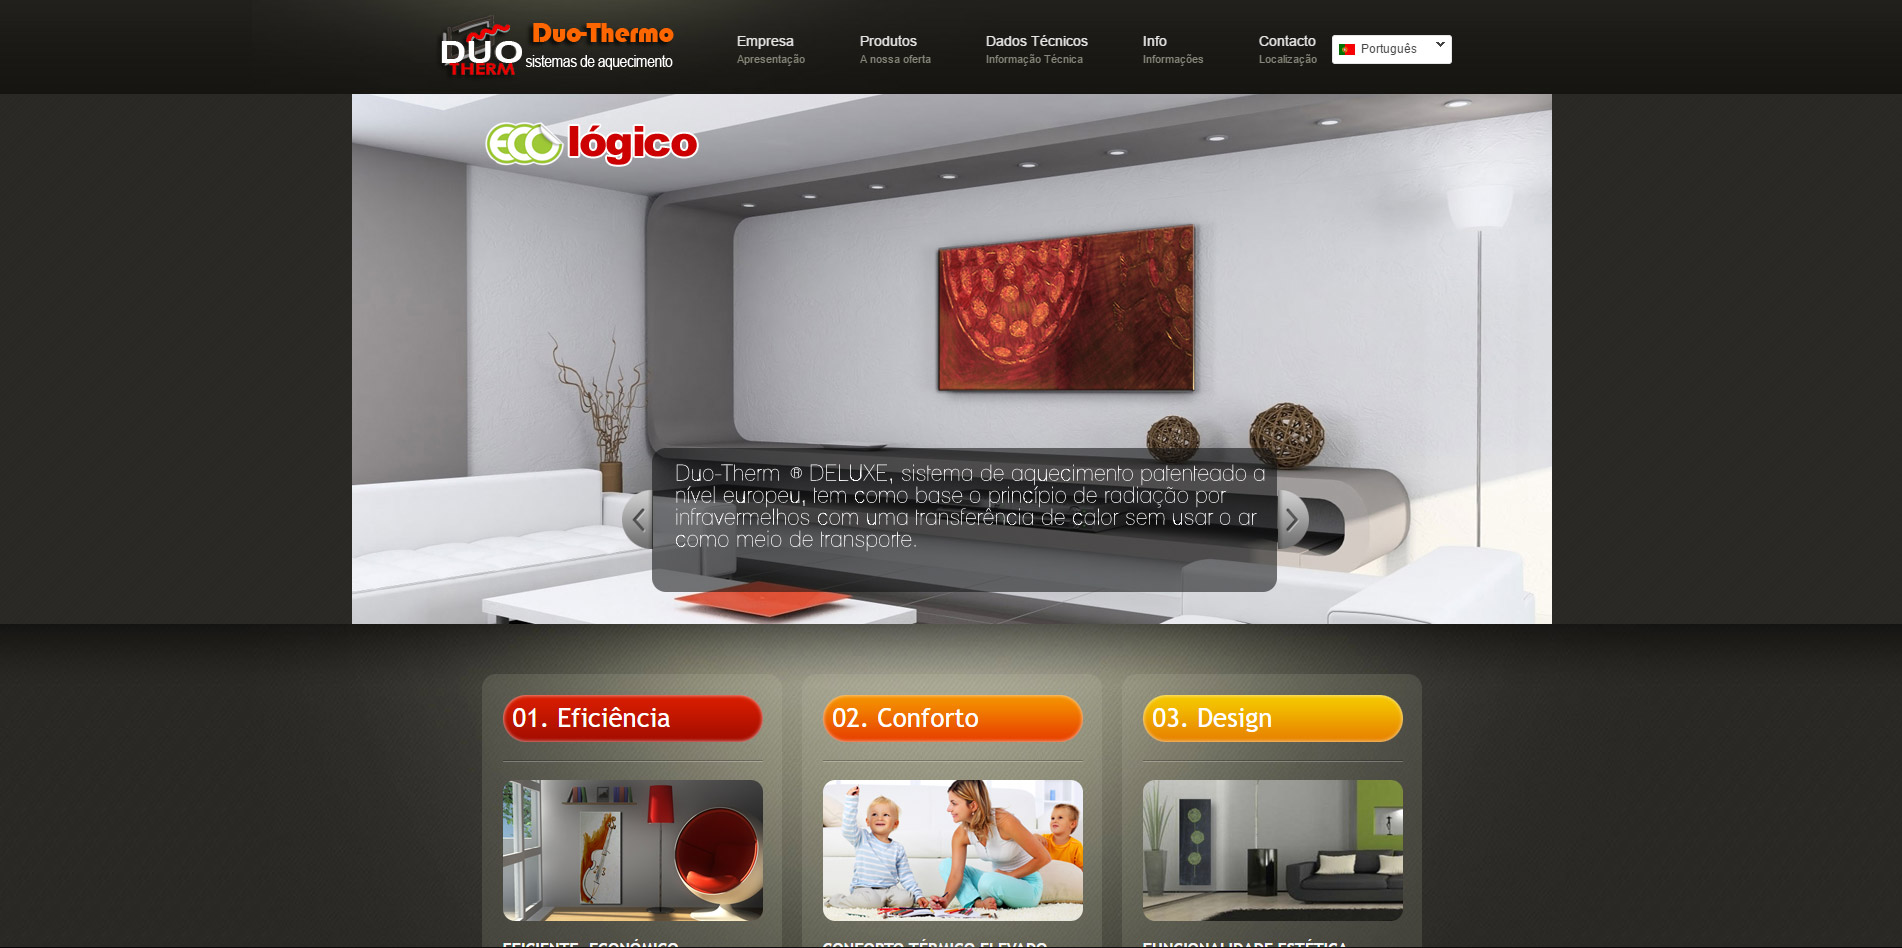 website design for Duo-Thermo Algarve